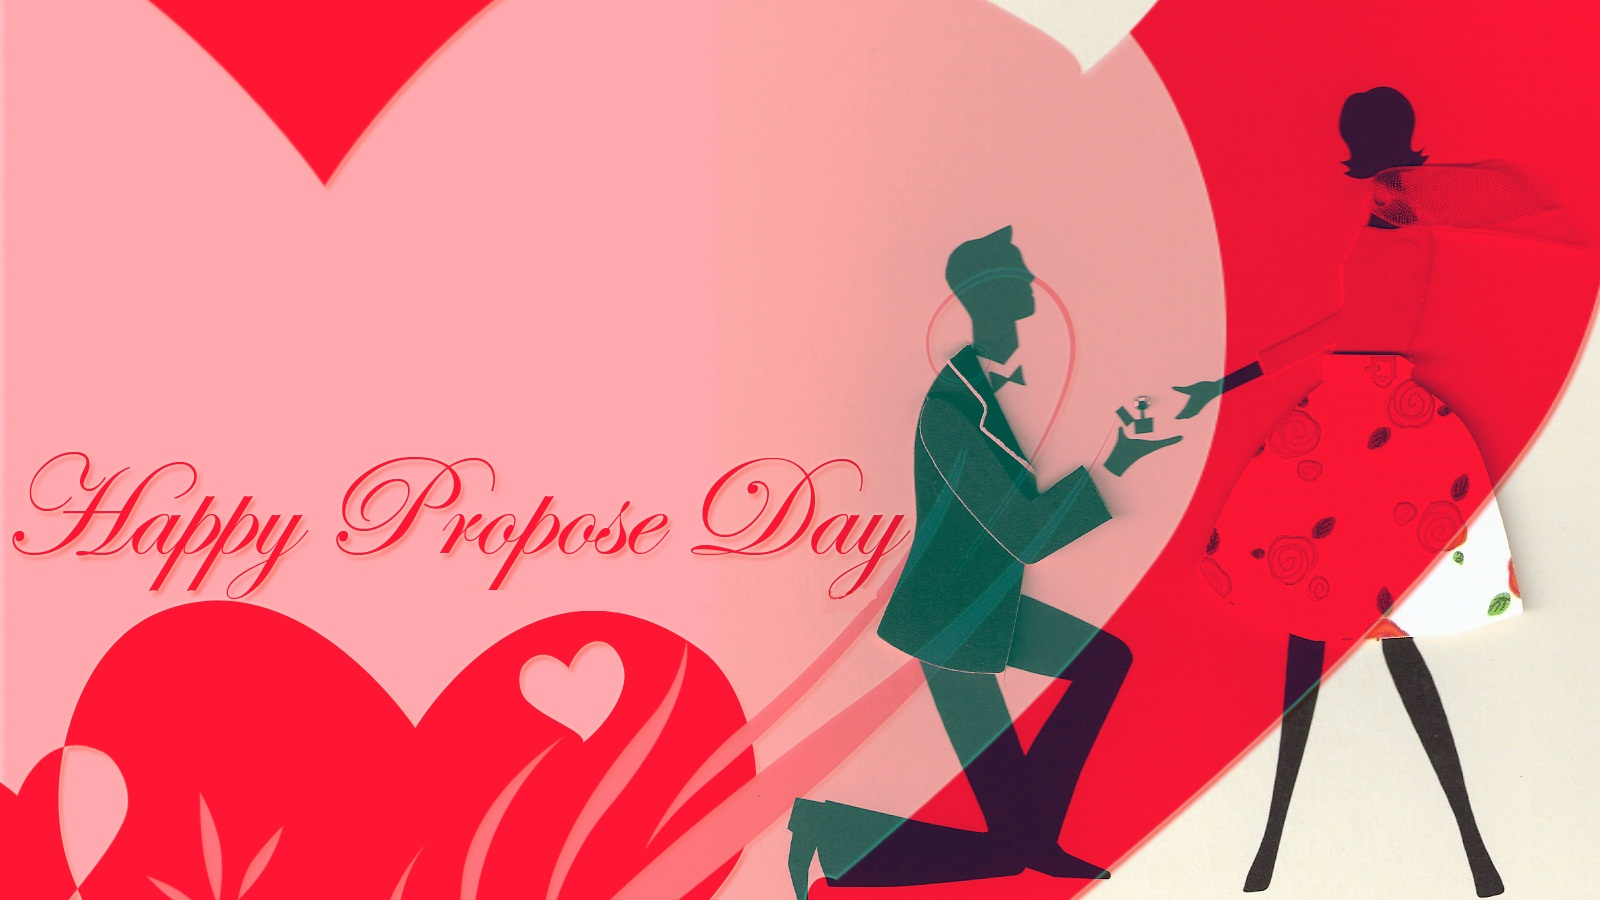 propose day wallpaper free download – valentine's day info